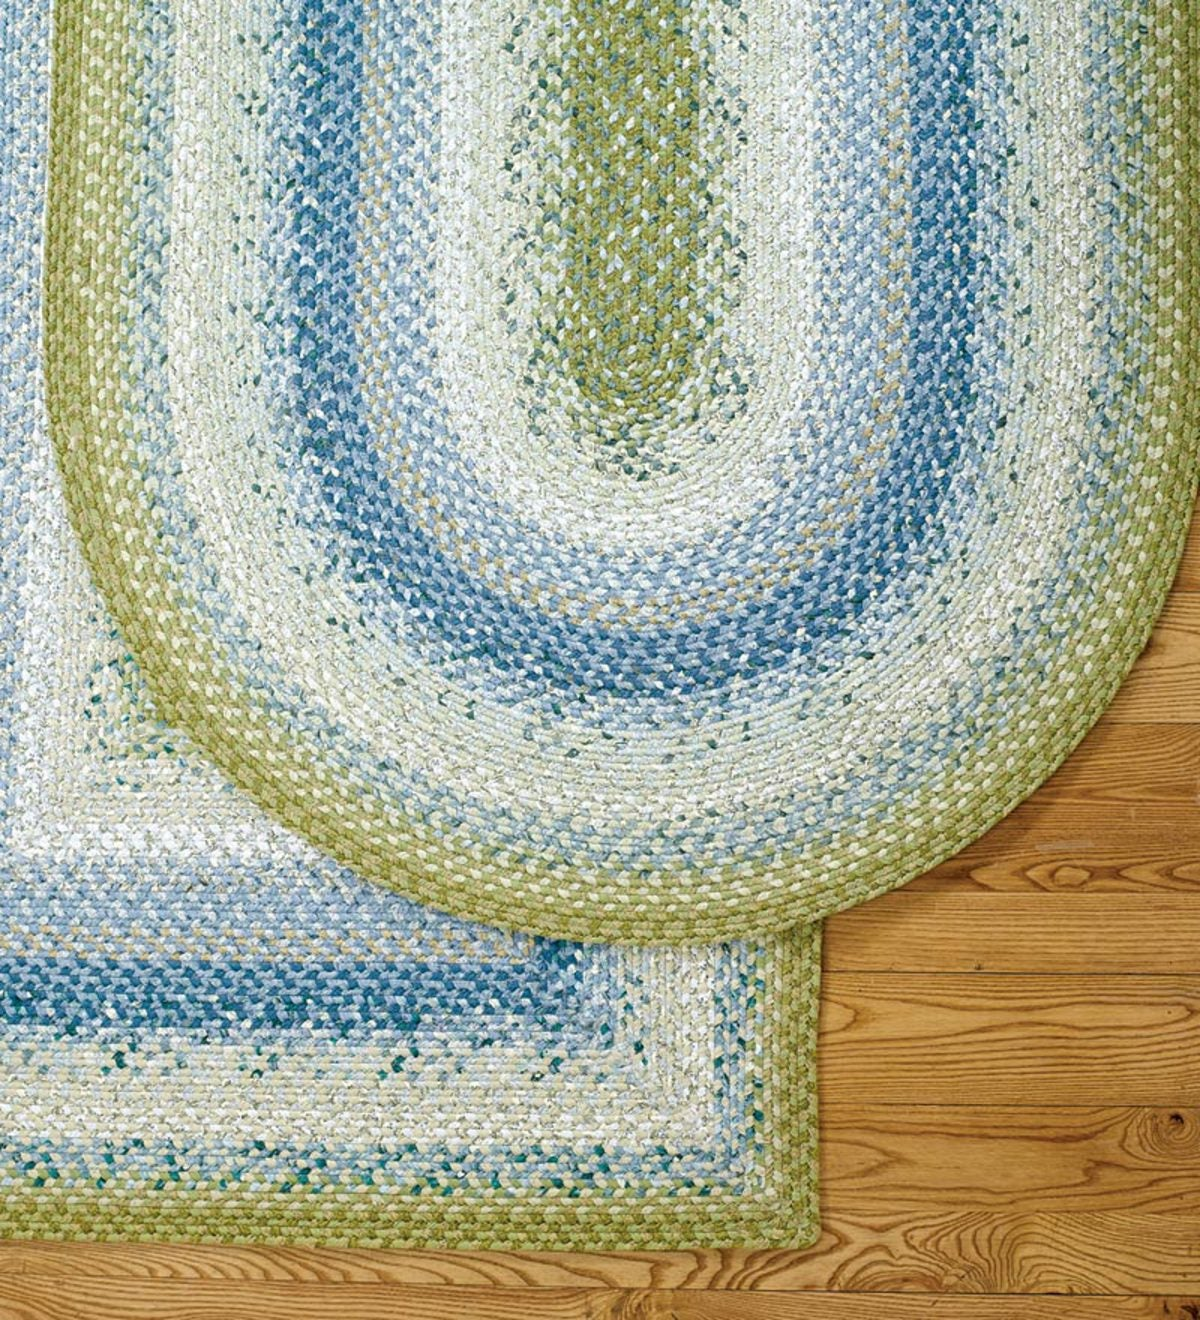 Oval Cotton Blend Braided Rug, 4' x 6' - Blue/Green